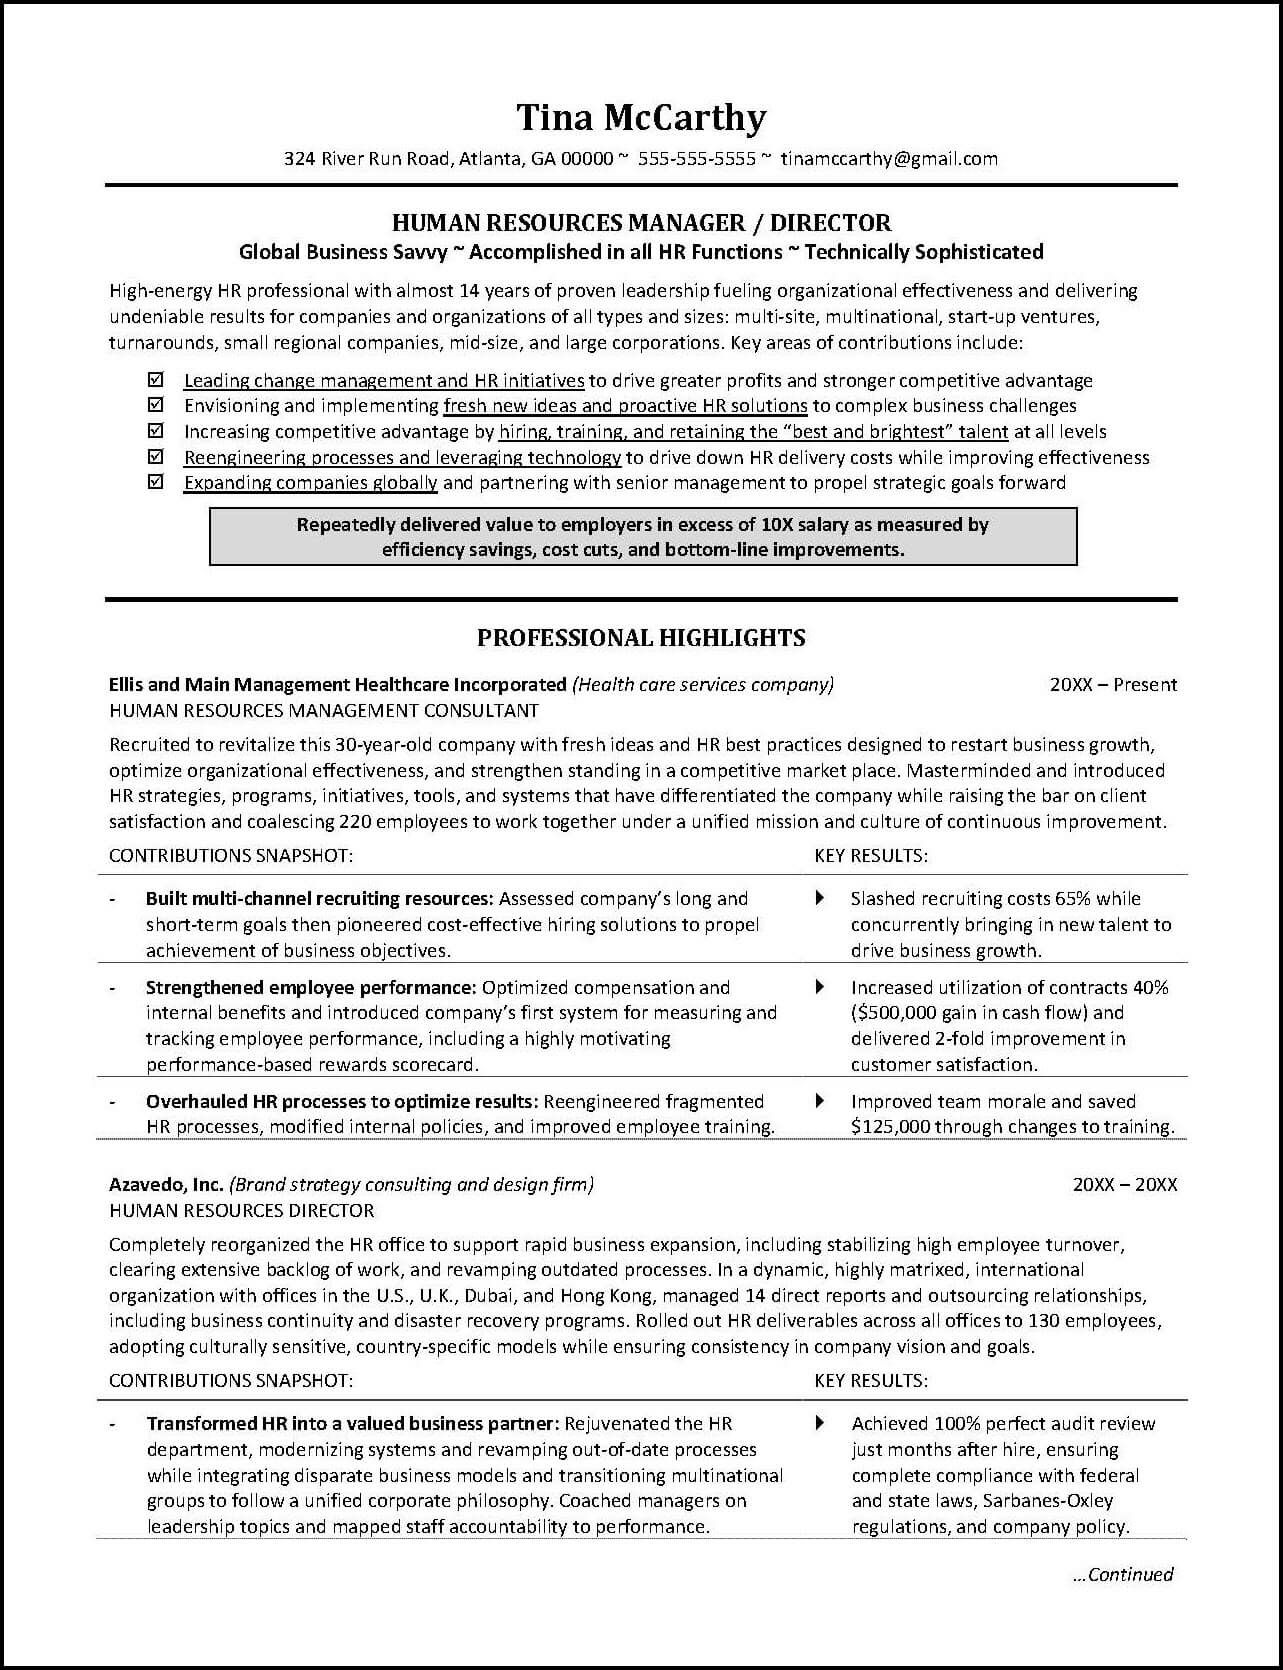 images about resume examples human resources 1000 images about resume examples human resources student resume and resume help